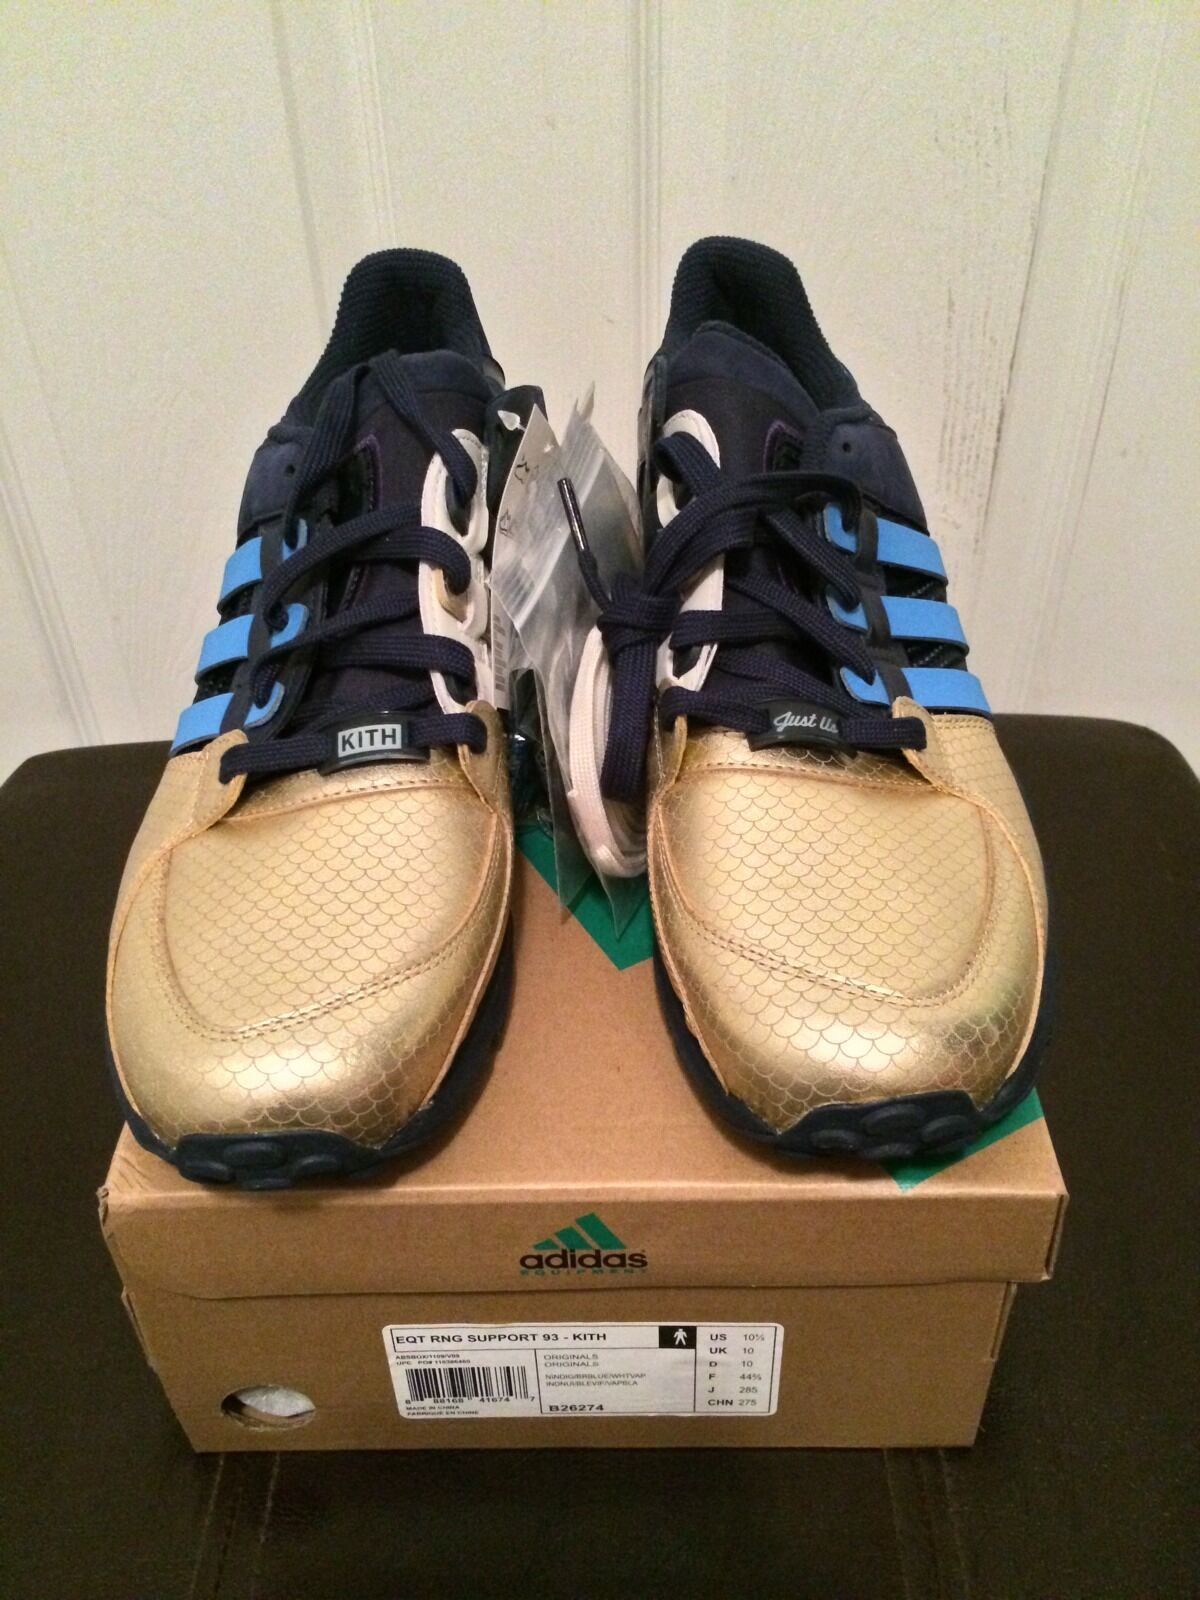 Ronnie Fieg x Adidas Consortium EQT Ring Support 93 Kith NYC's Bravest Sz 10.5